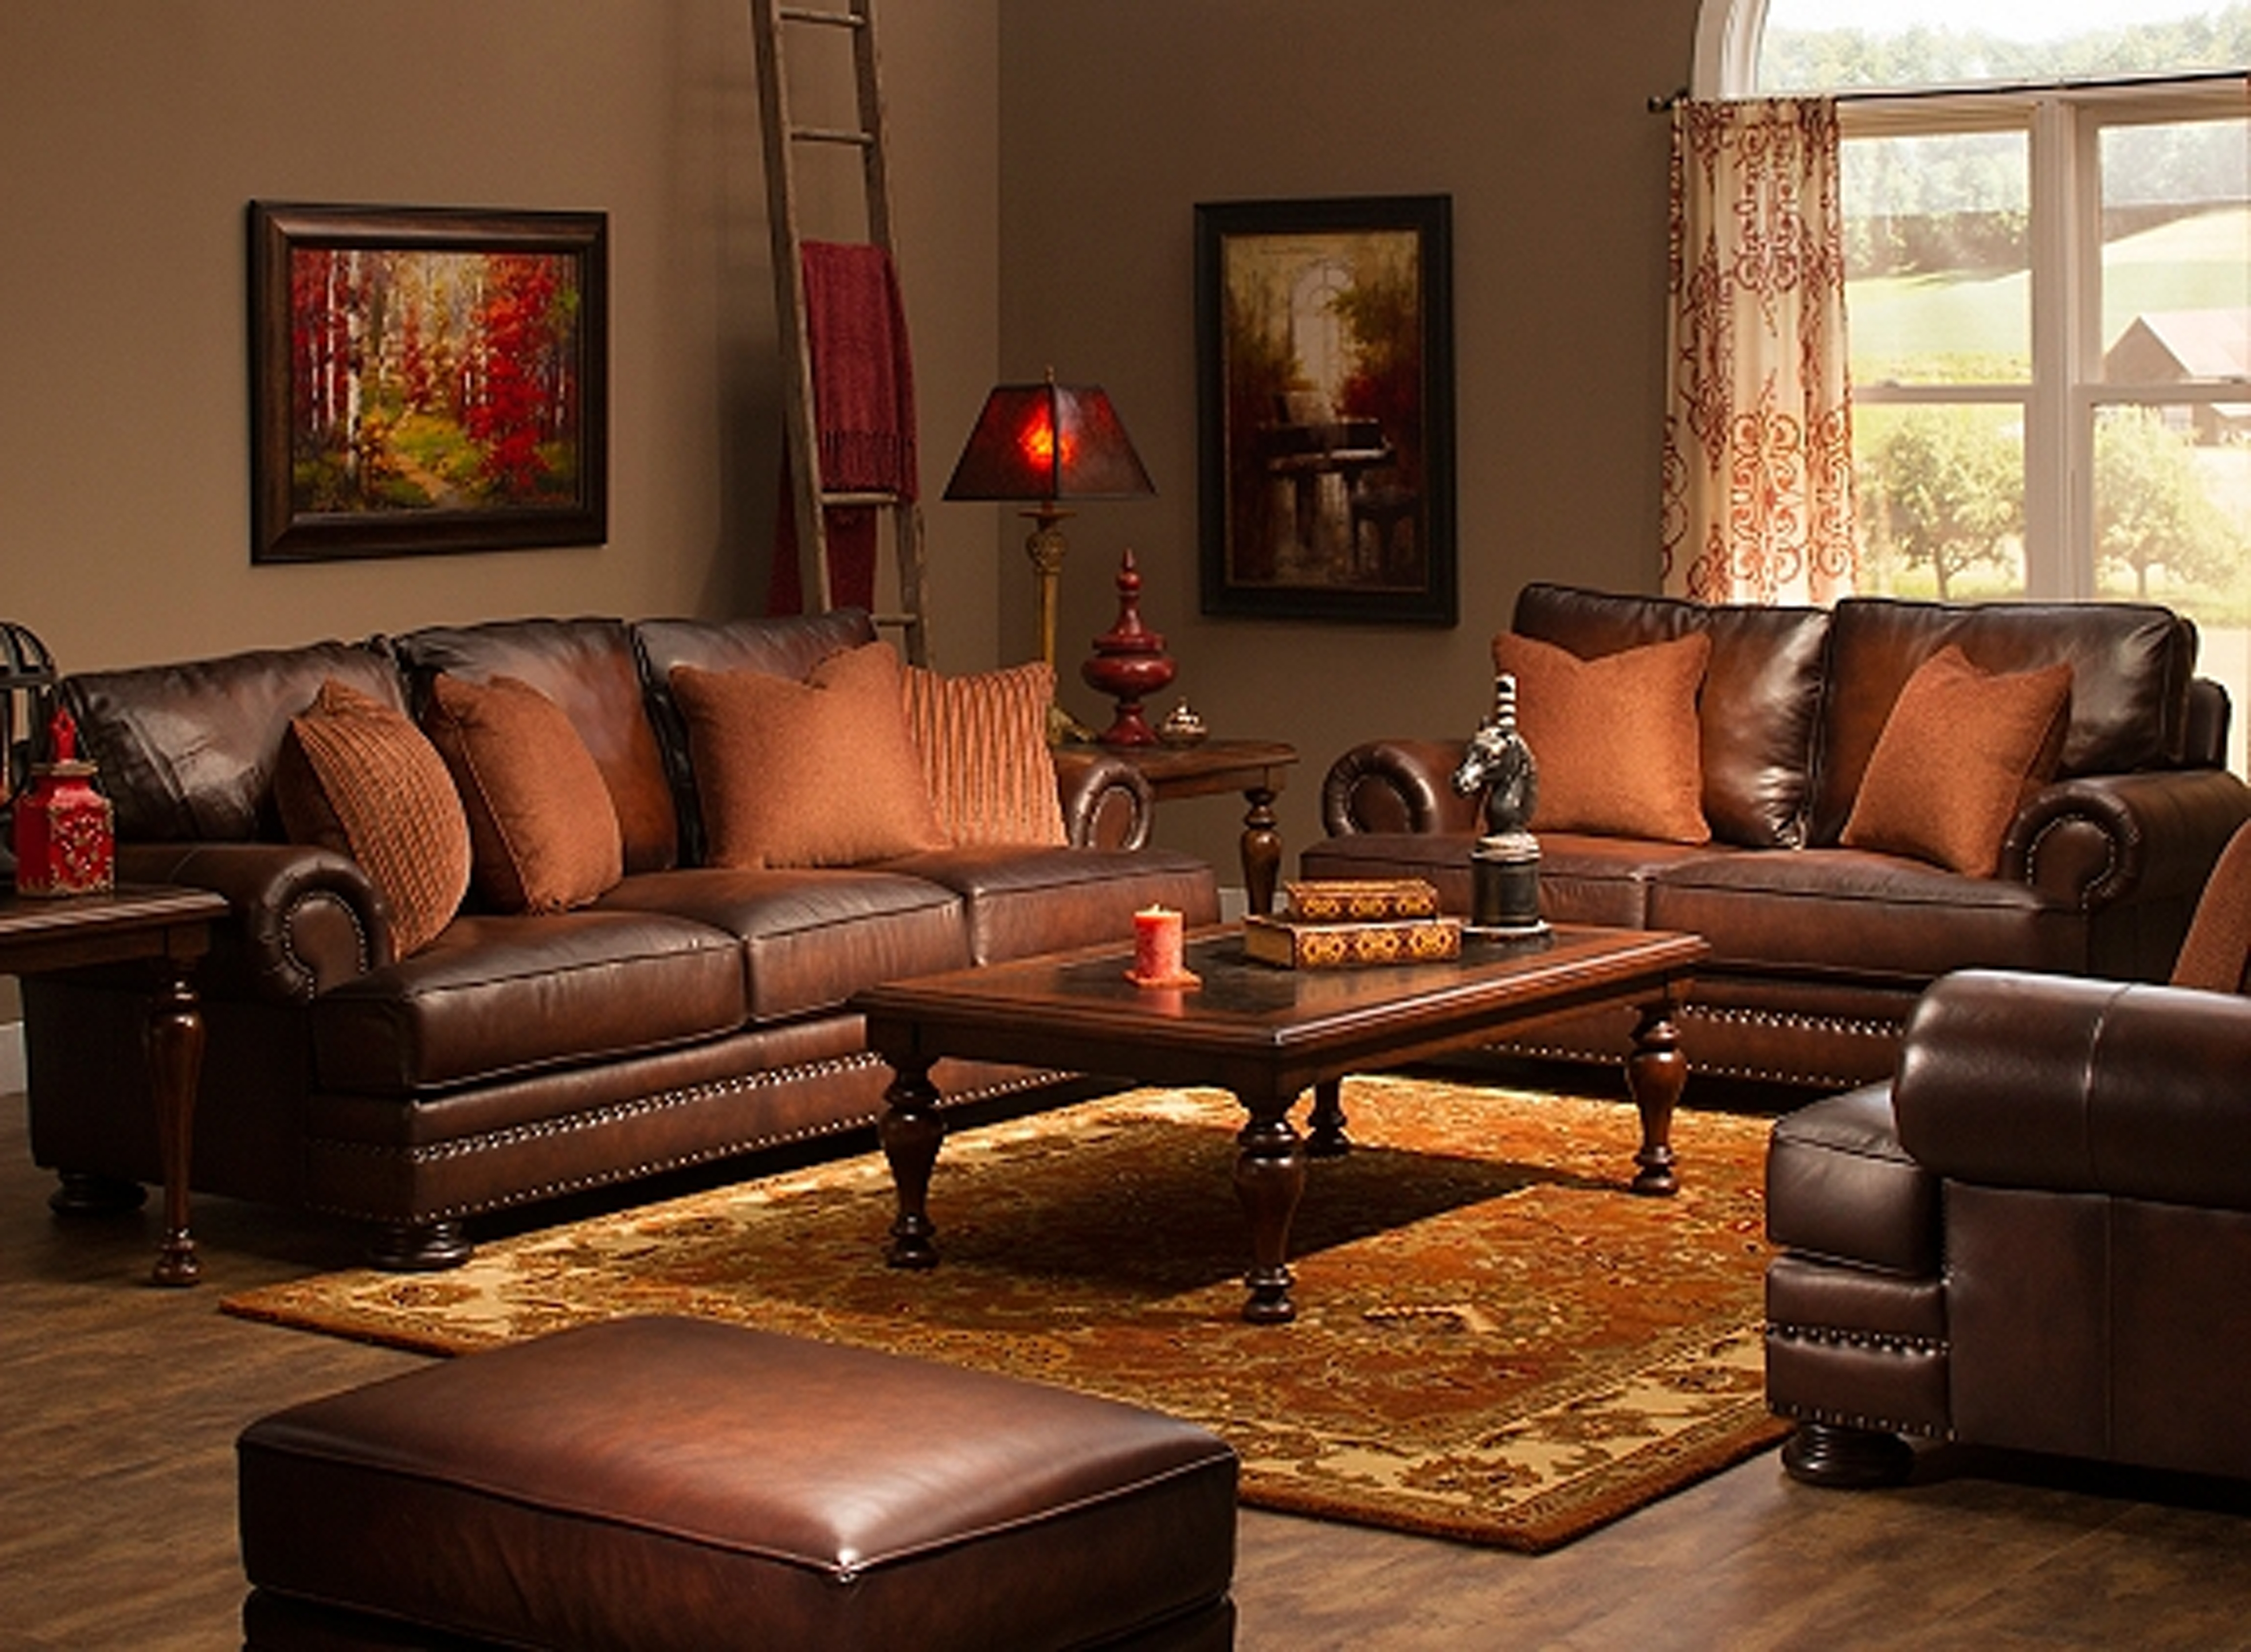 Dayton Ohio Sectional Sofas With Recent Bernhardt Living Room Foster Leather Sofa 031220 – Furniture Fair (Gallery 14 of 20)